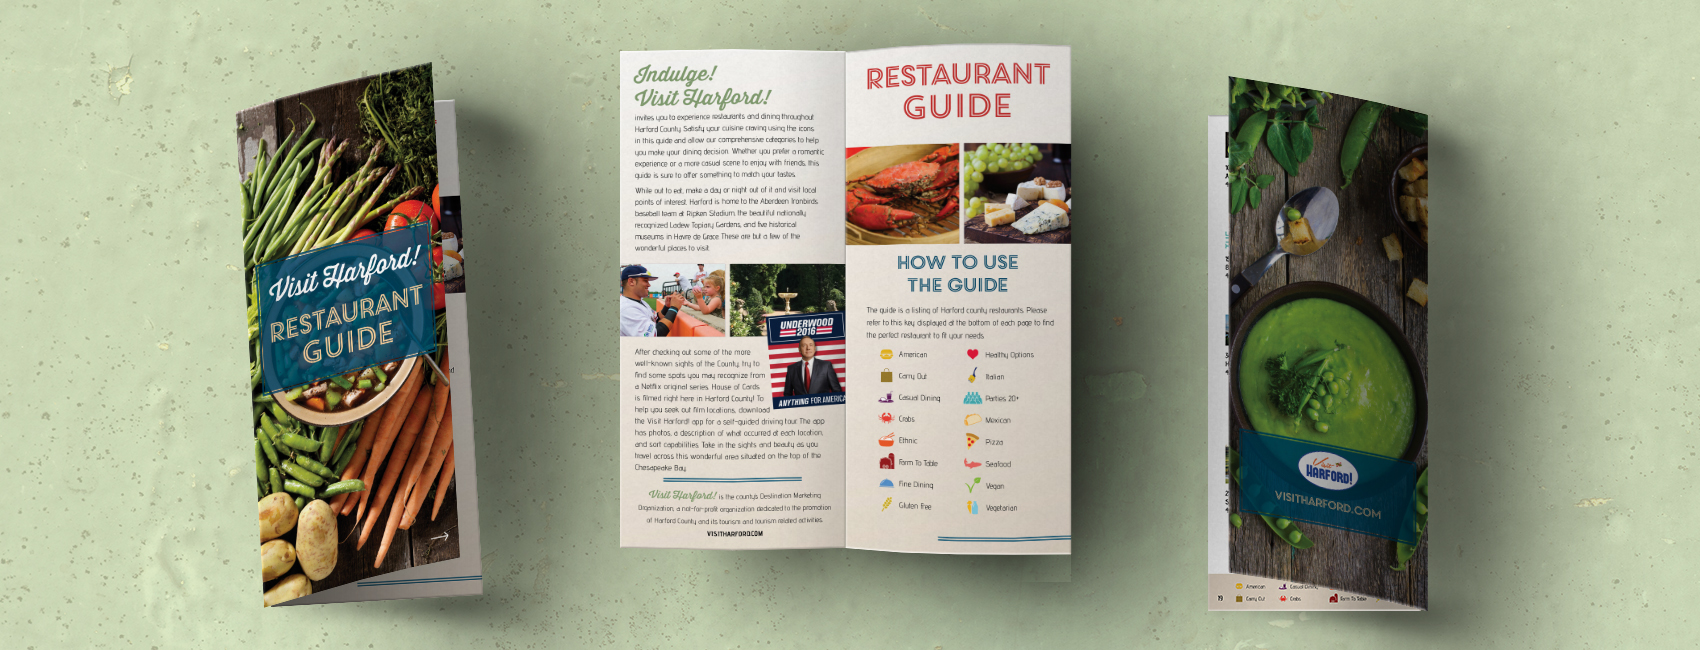 Harford County Restaurant Guide | Publication Design